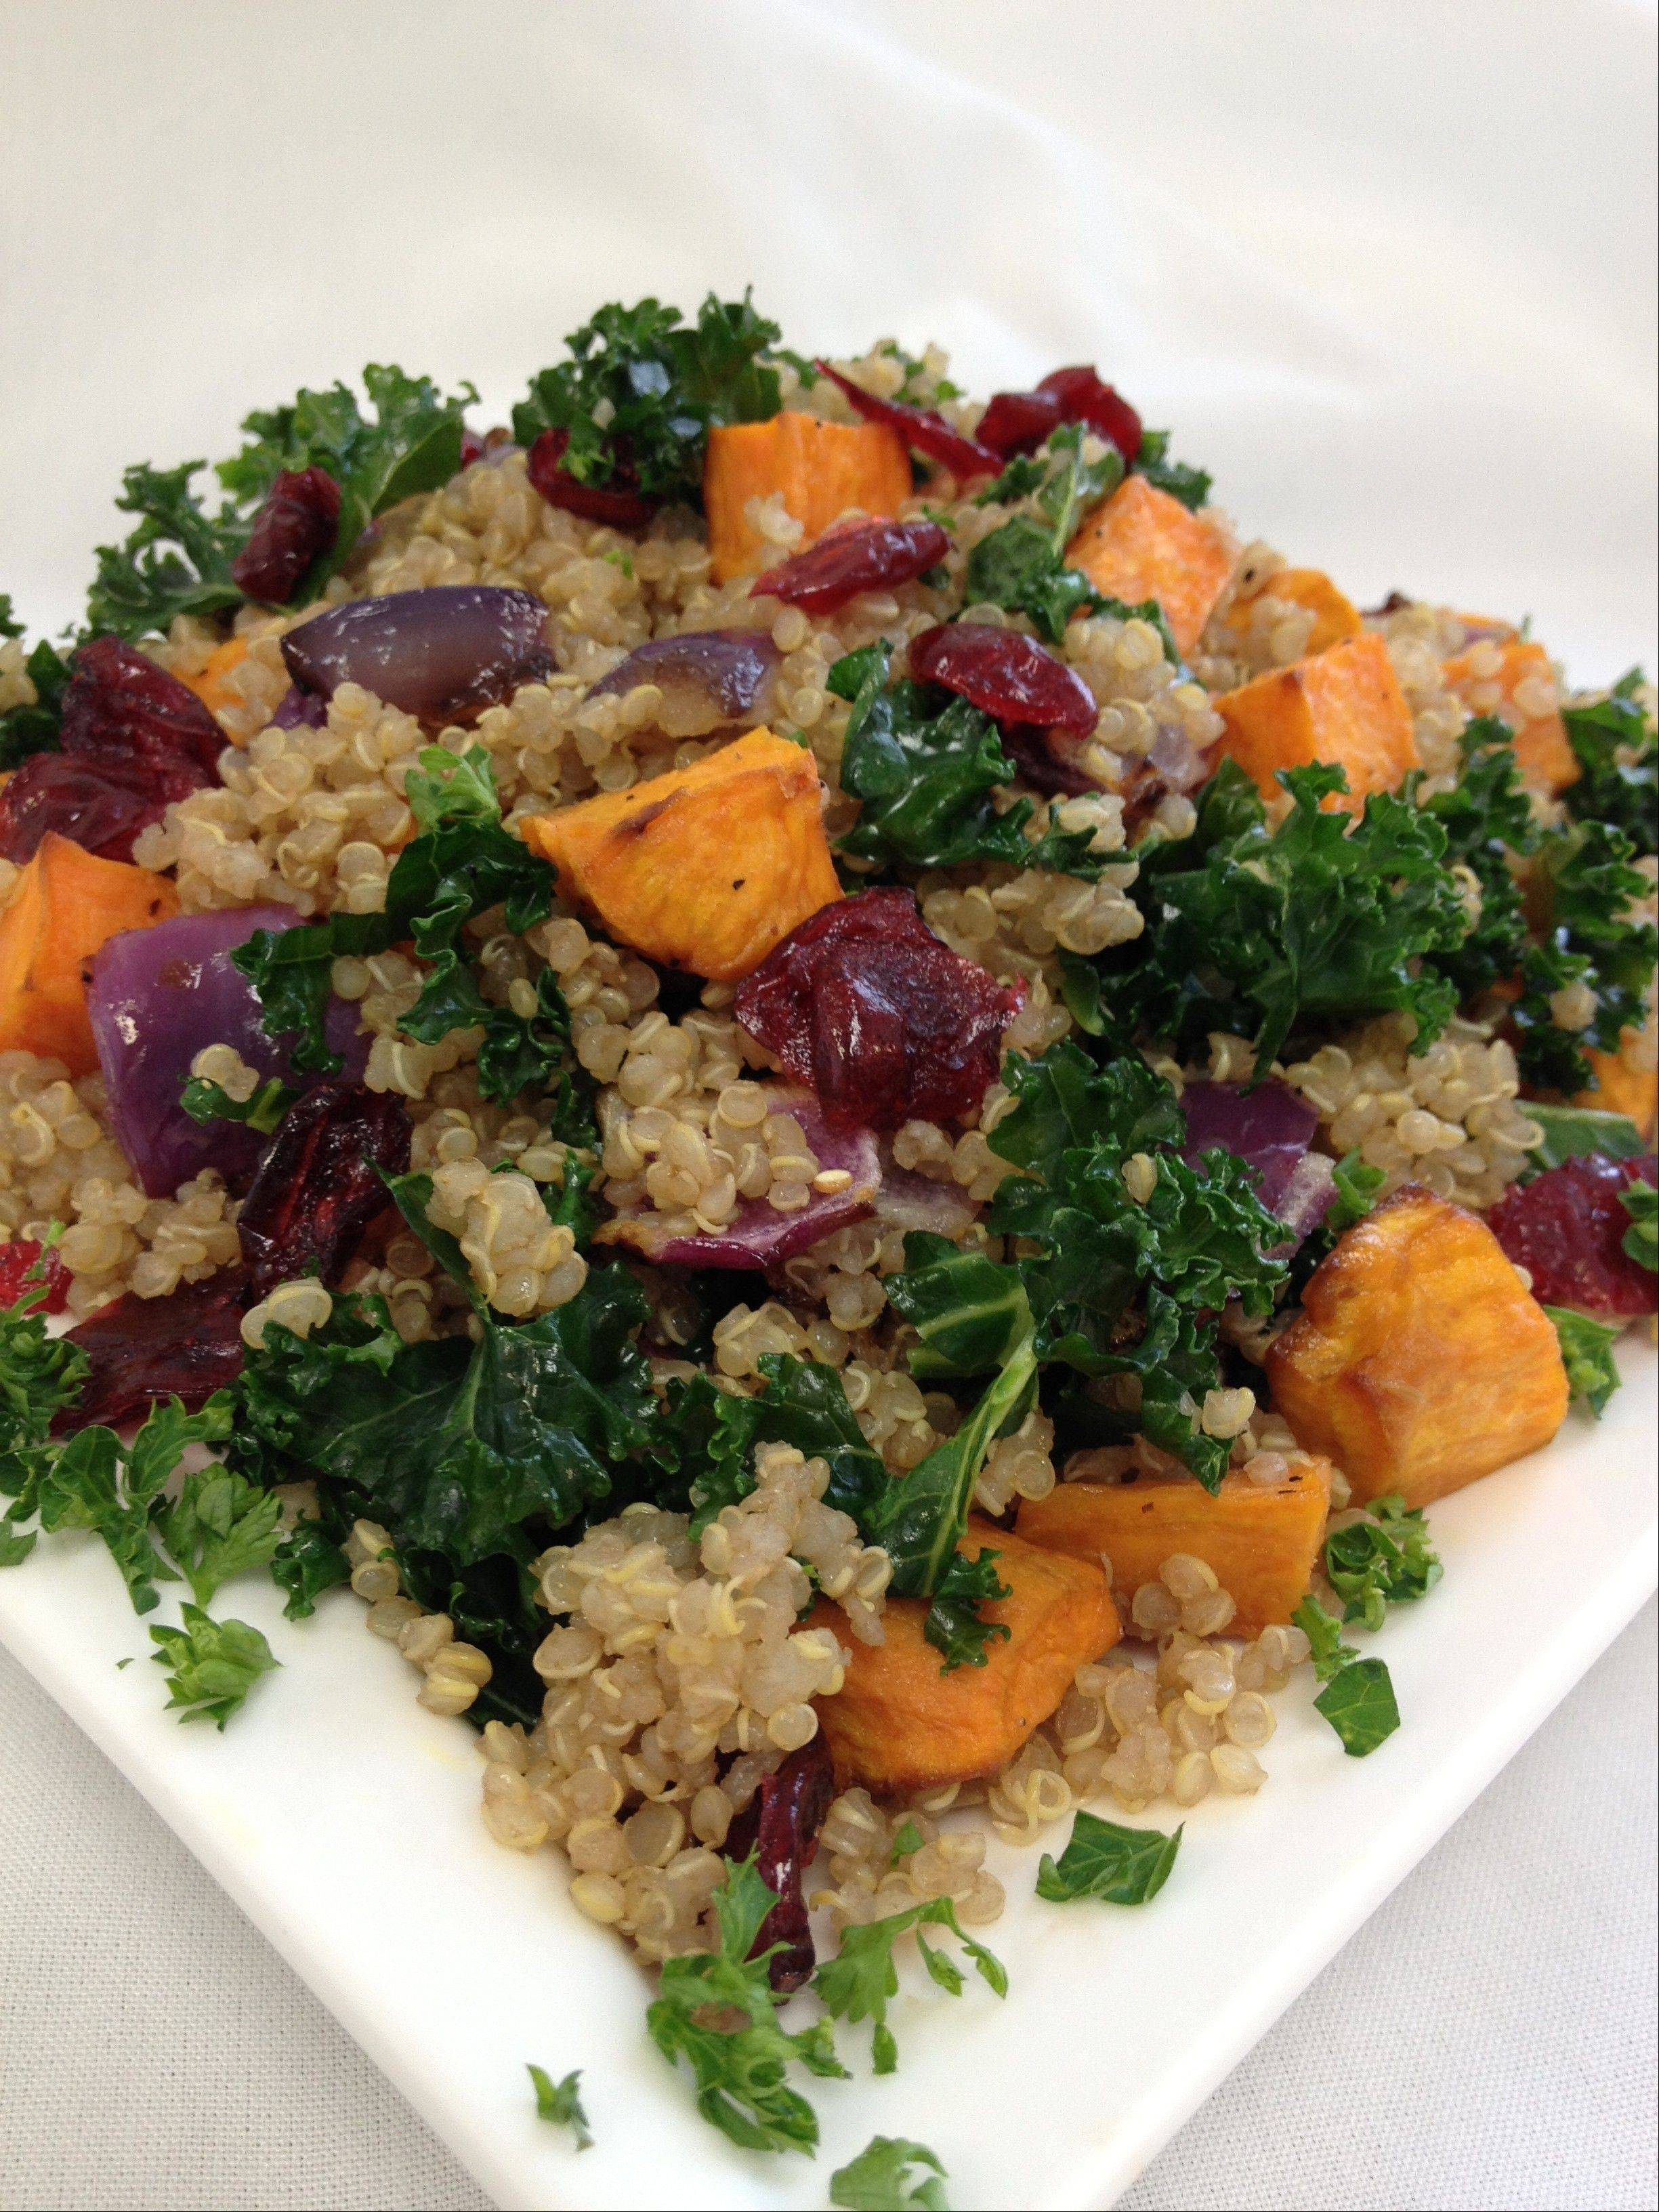 Whole-grain quinoa combined with potatoes and vegetables comes to the table as a hearty side salad or a meatless entree.